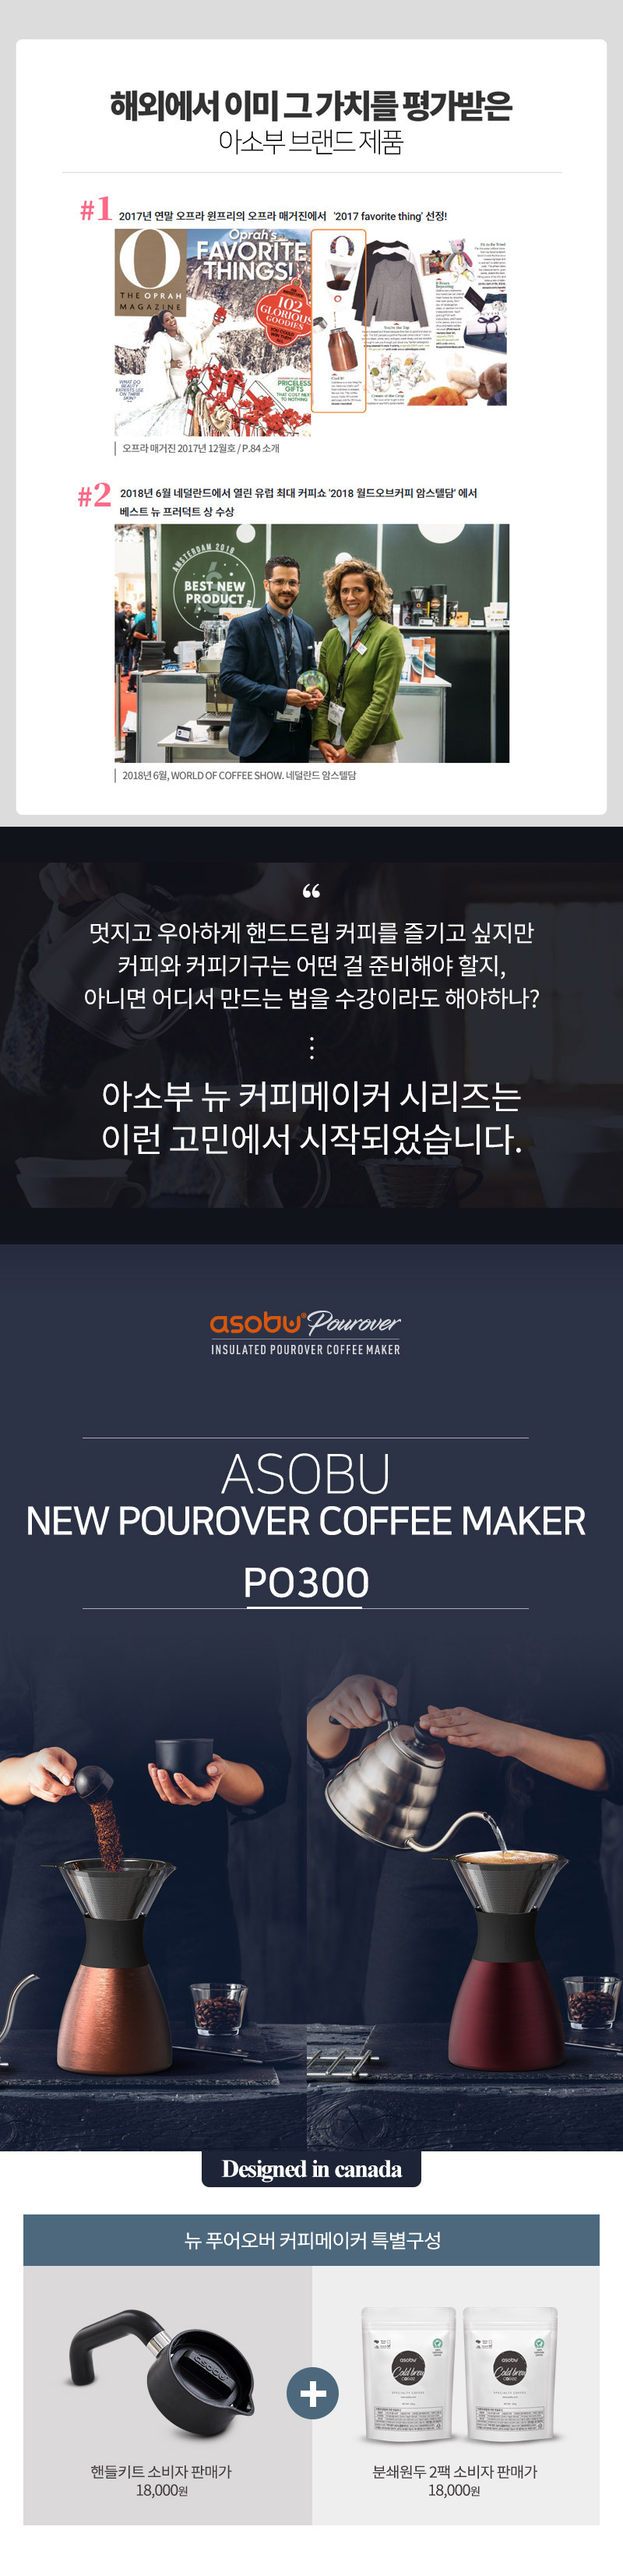 new_pourover_2.jpg